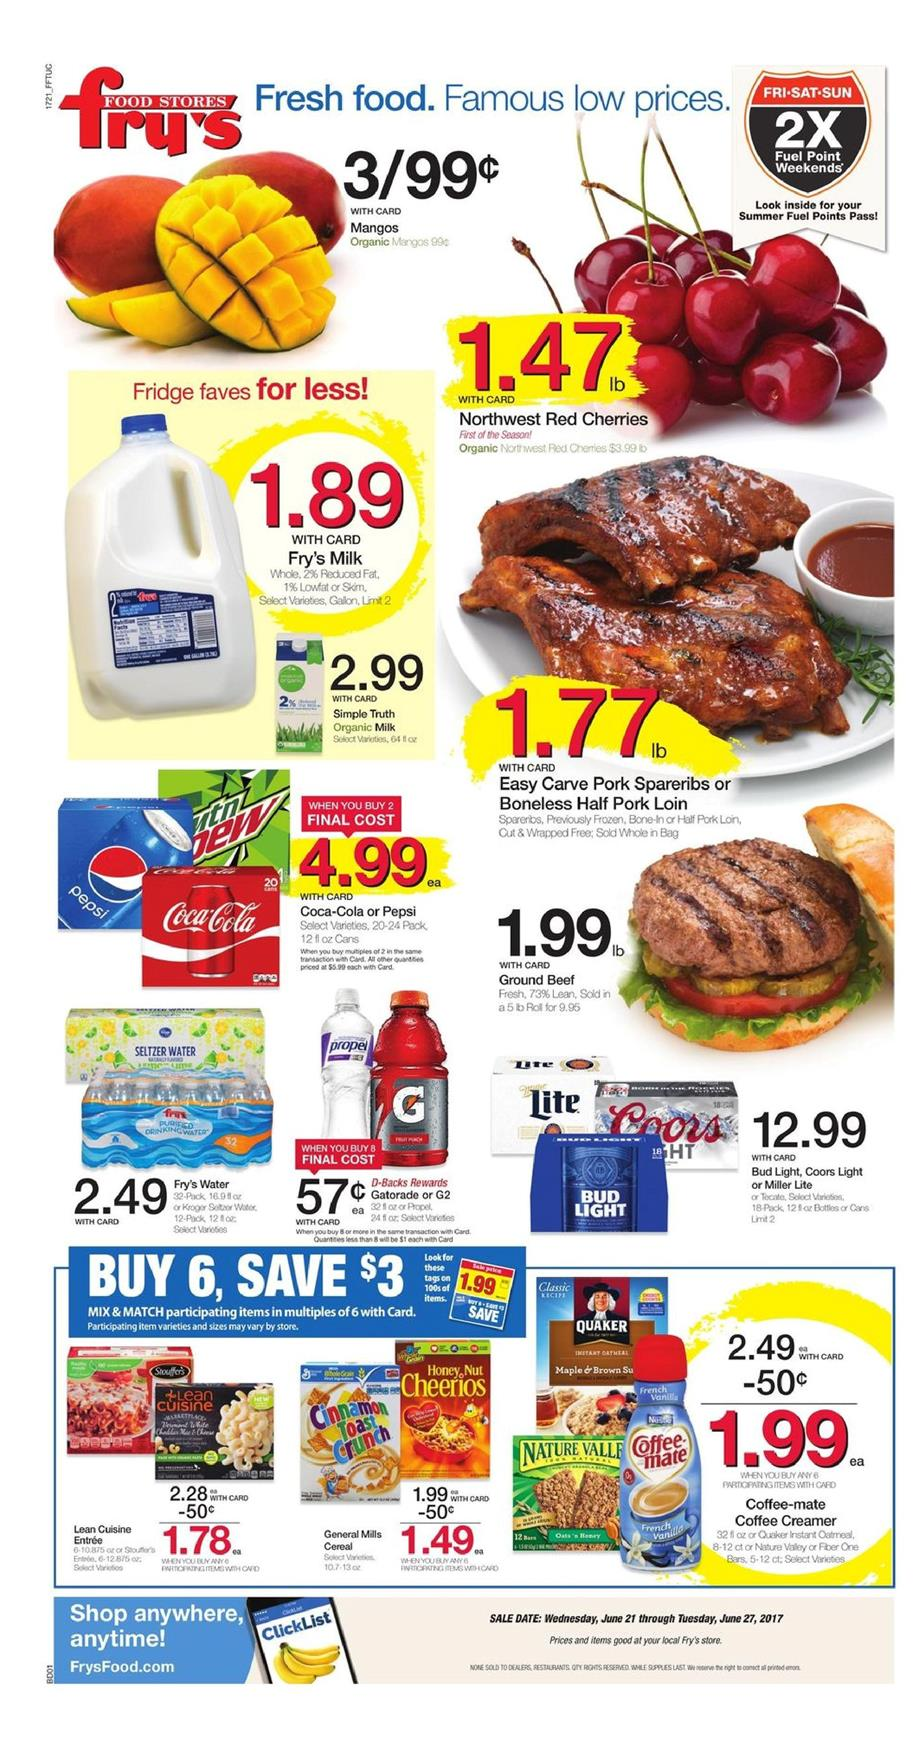 Fry's Food Stores, Tolleson, AZ. K likes. Fresh Food. Famous Low Prices. LIKE us for special offers, digital coupons, community updates, recipes and more.